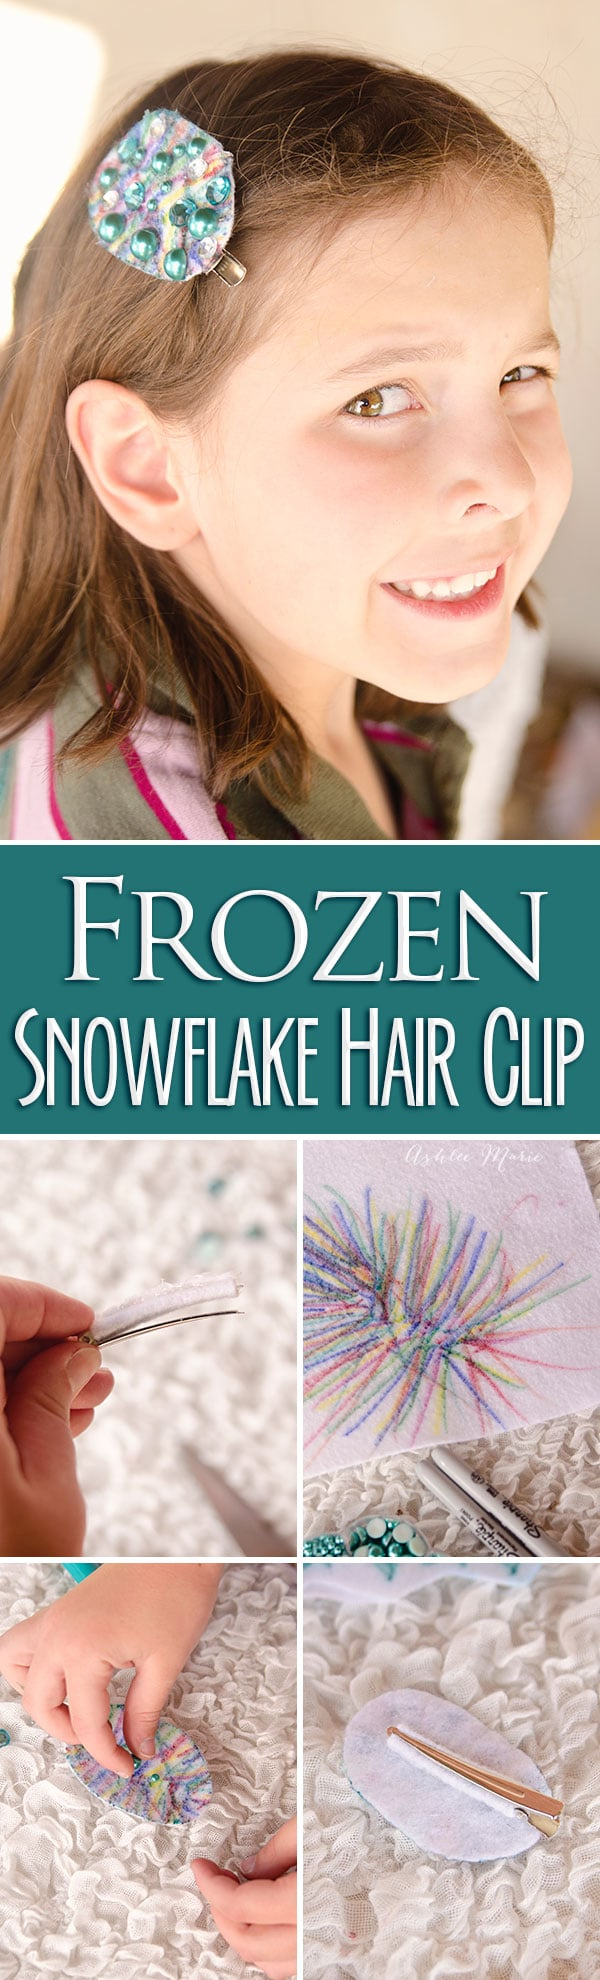 a fun craft activity for any party, use felt, markers and beads to create fun frozen hair clip